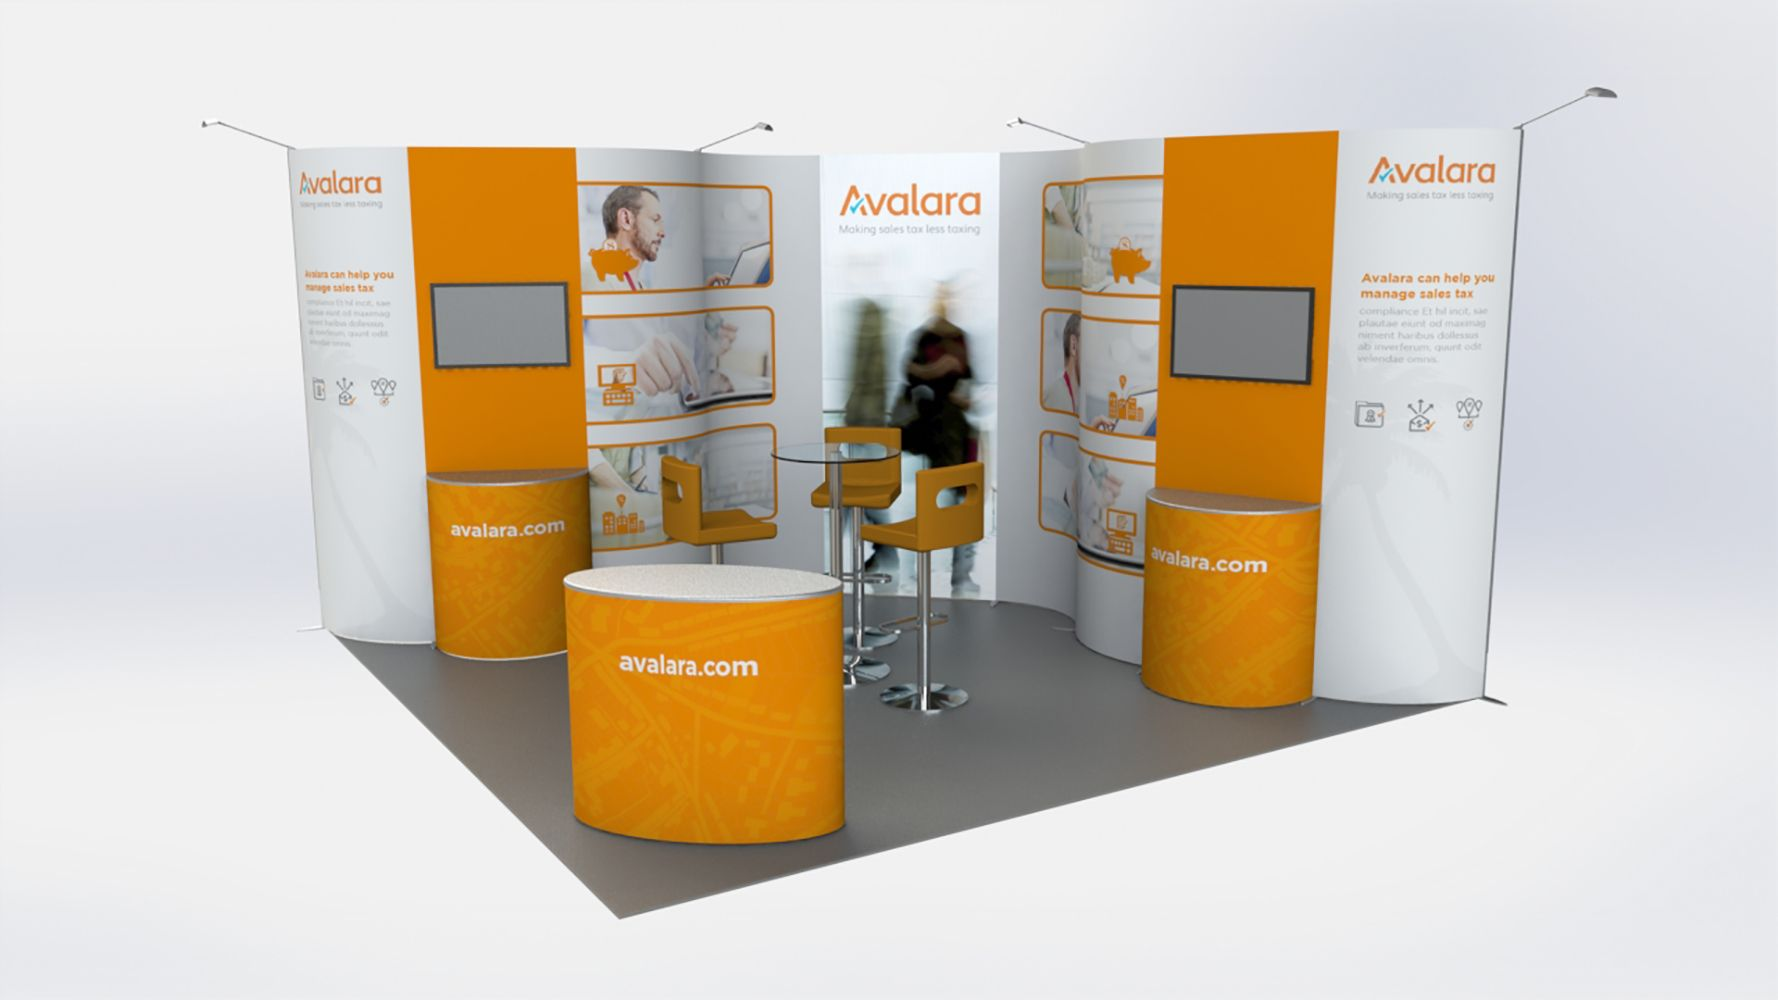 Exhibition Stand Visualisation : 3d visualisation of a modular exhibition stand for avalara by vivid